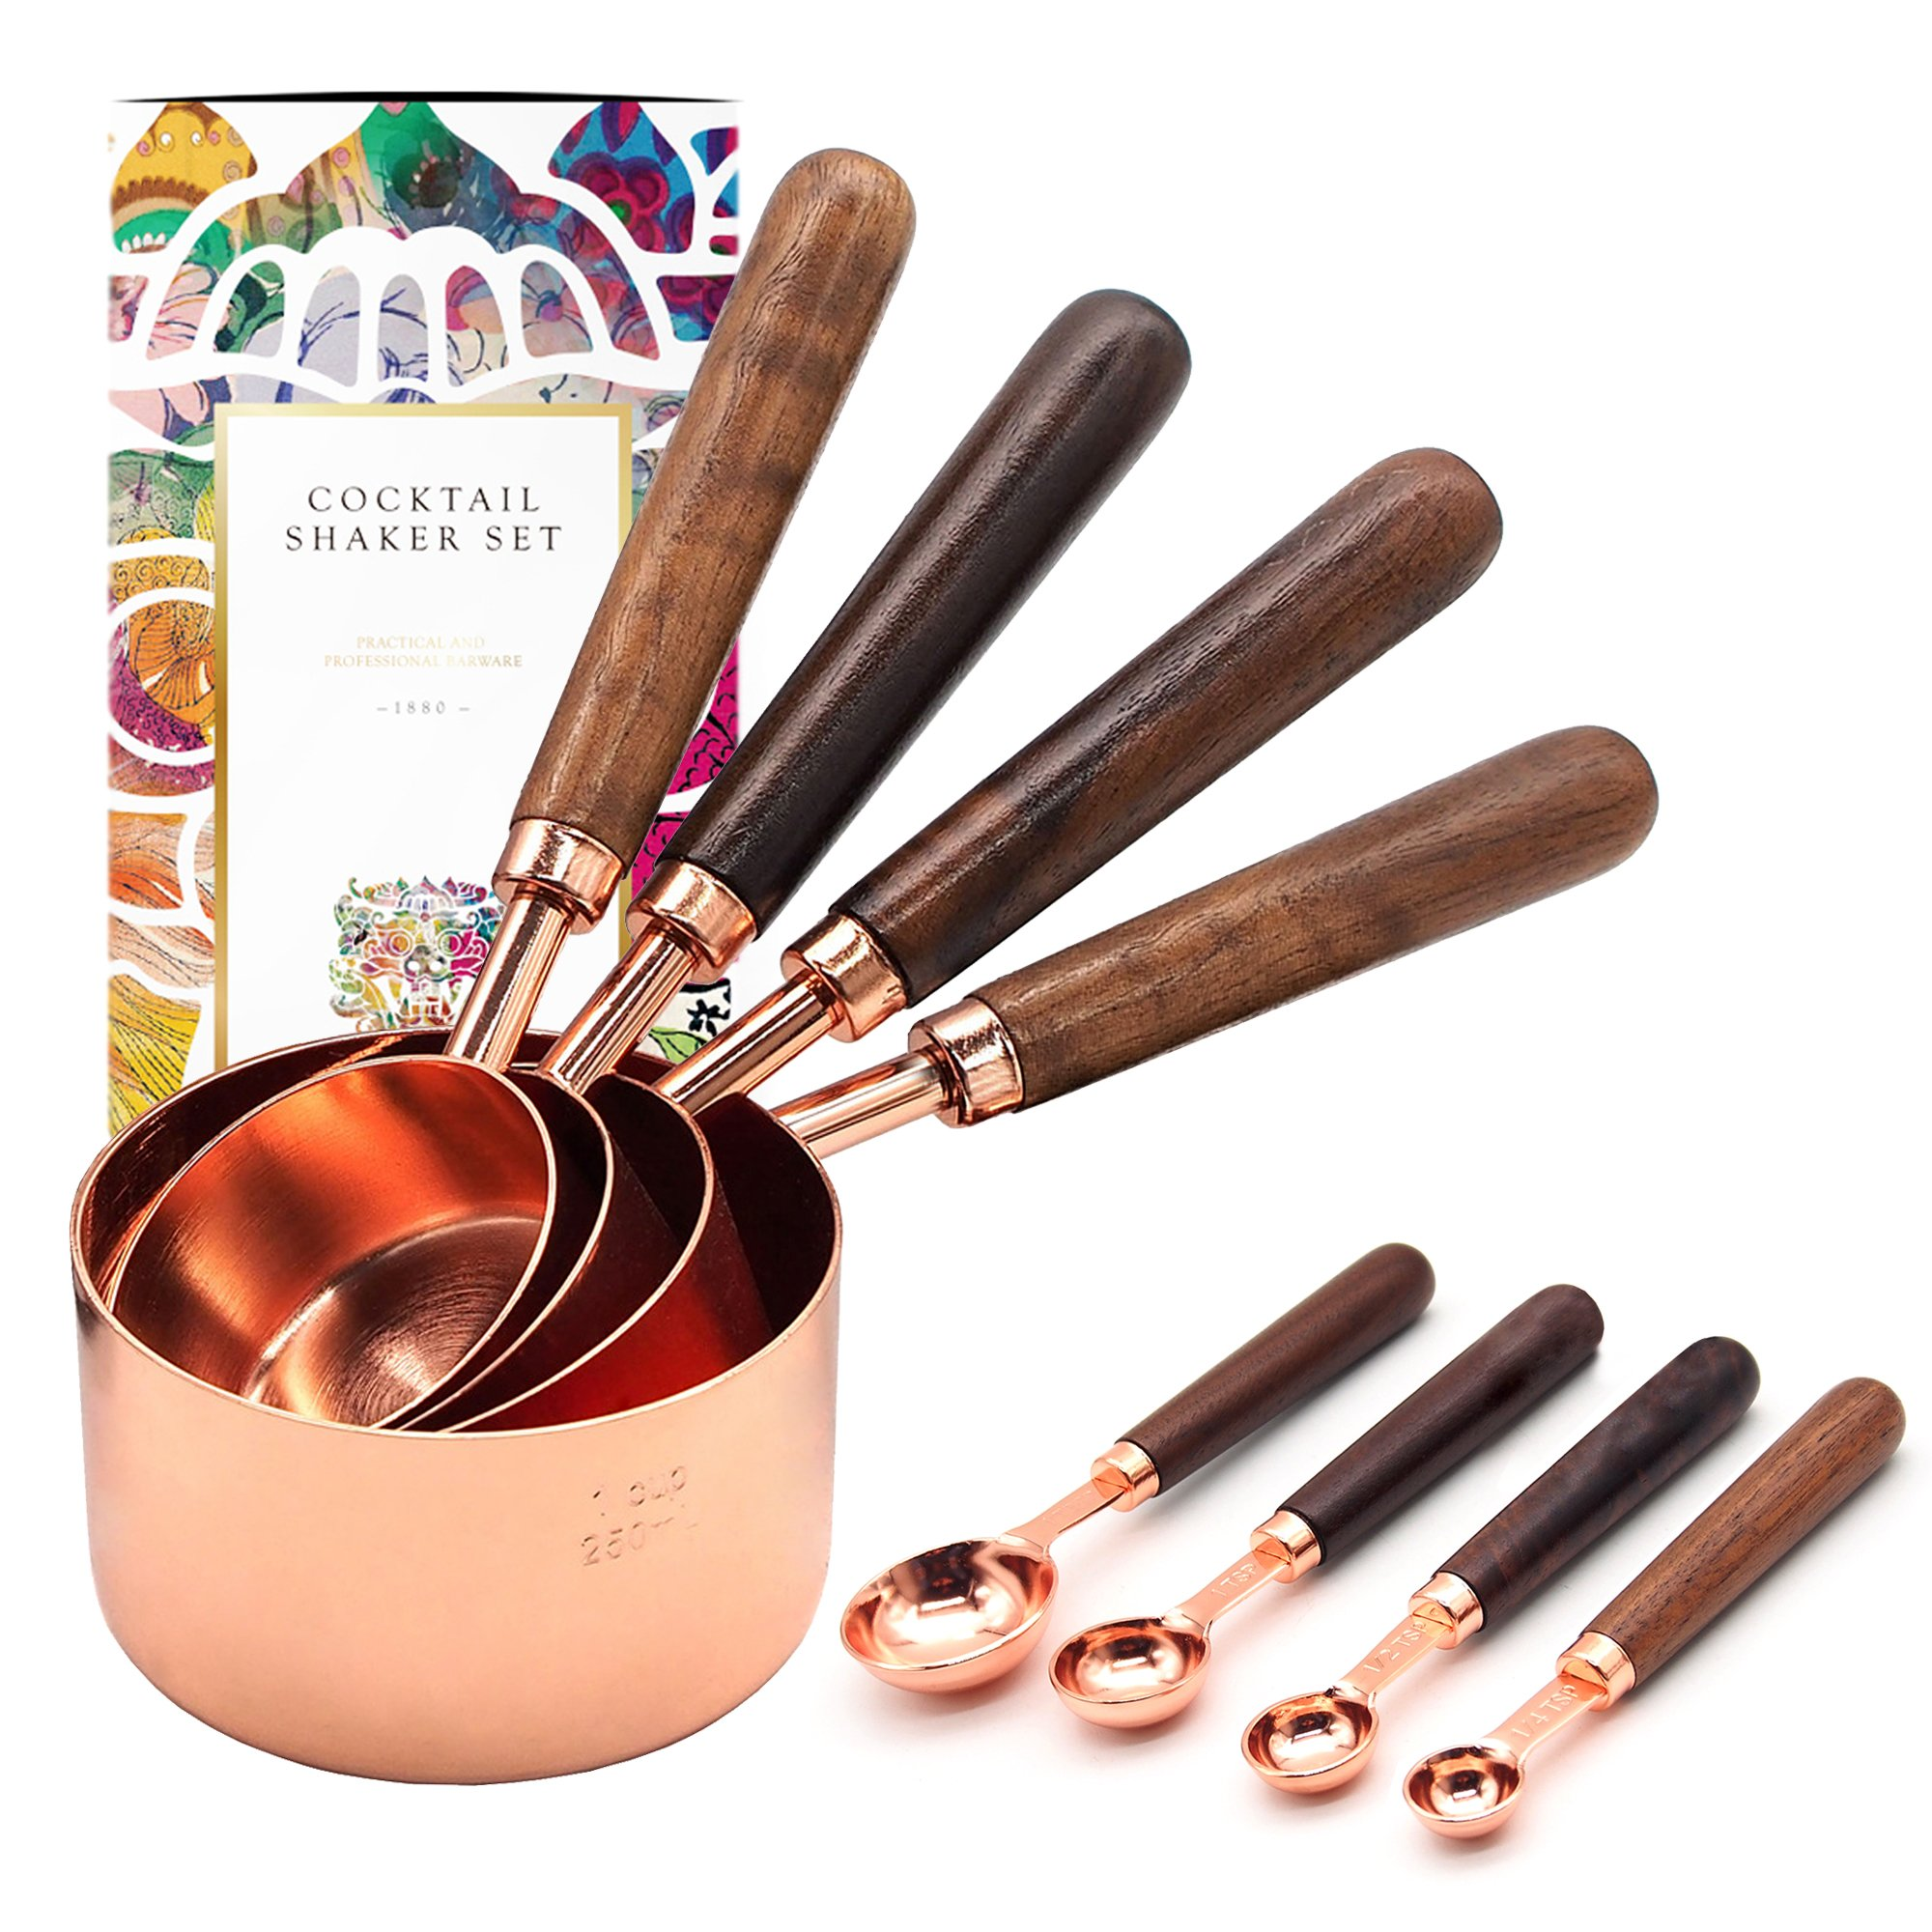 Homestia Measuring Cups and Spoons Set with Wood Handle Stainless Steel 8 PIECE for Dry and Liquid Ingredients Engraved Meaurement Heavy Duty Baking & Cooking Utensils